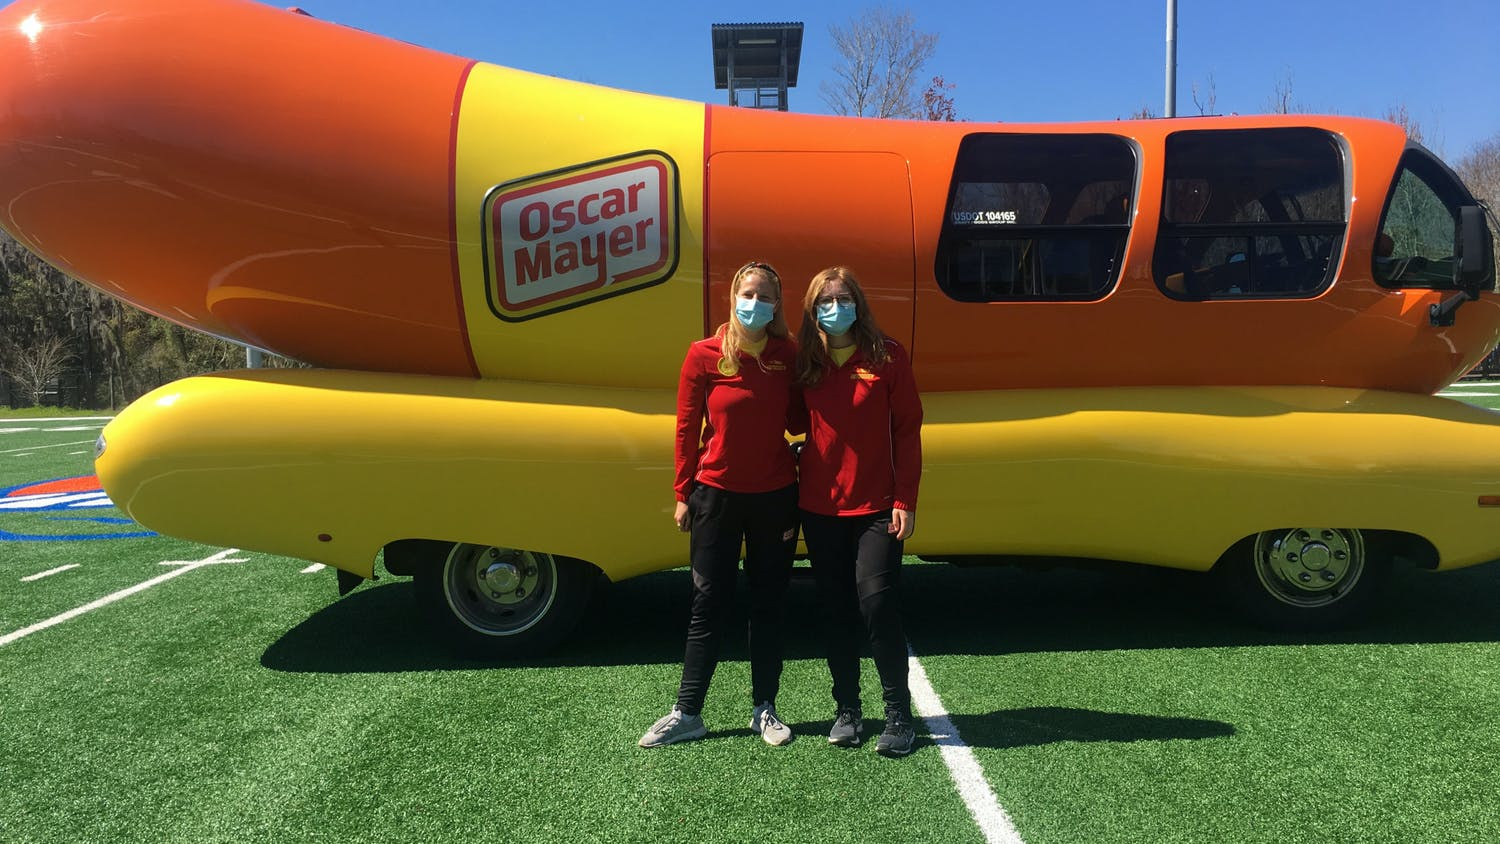 Molly Swindall, left, and Maggie Thomas, right, two of the 12 hotdoggers of Class 33, arrived at UF in the Wienermobile to recruit the next class of hotdoggers.